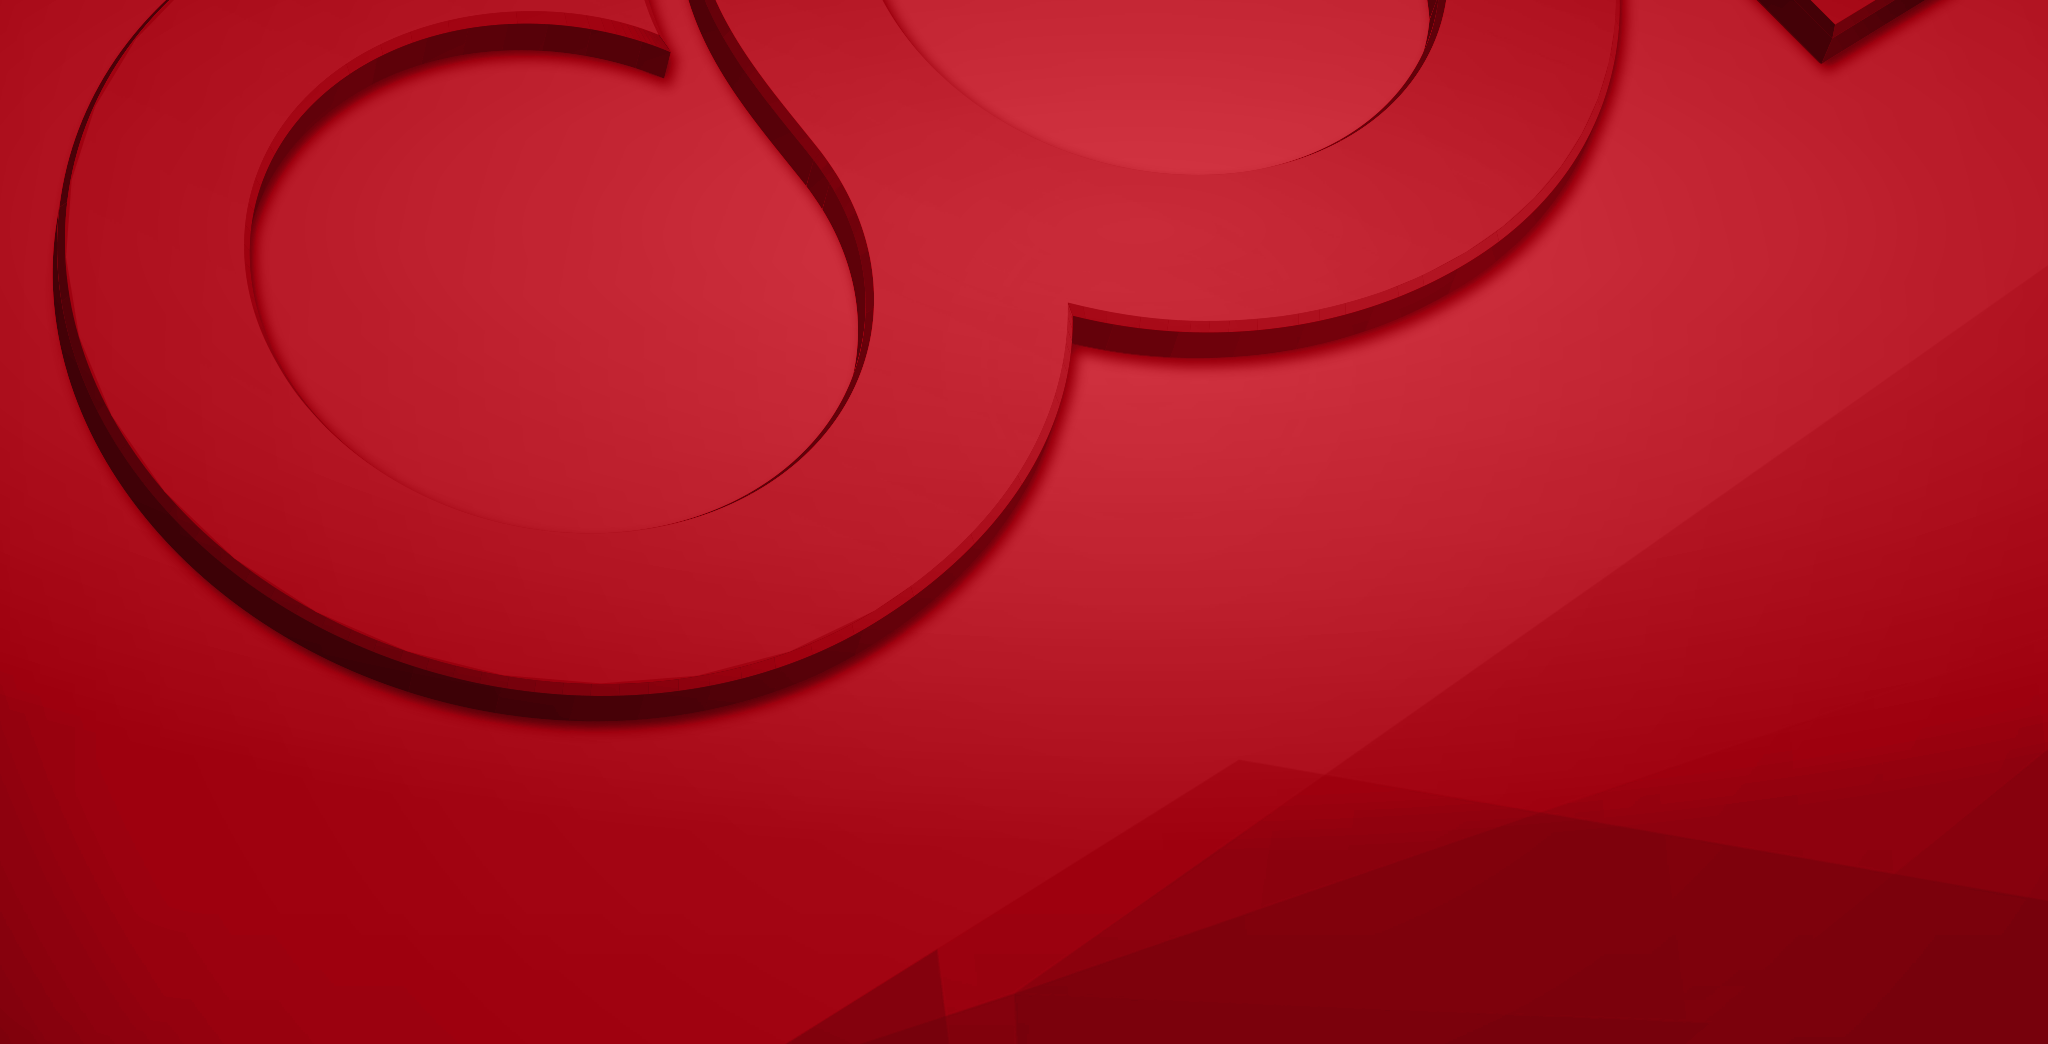 DCR_CorporateSite_Red_Template_2_DCRLOGO